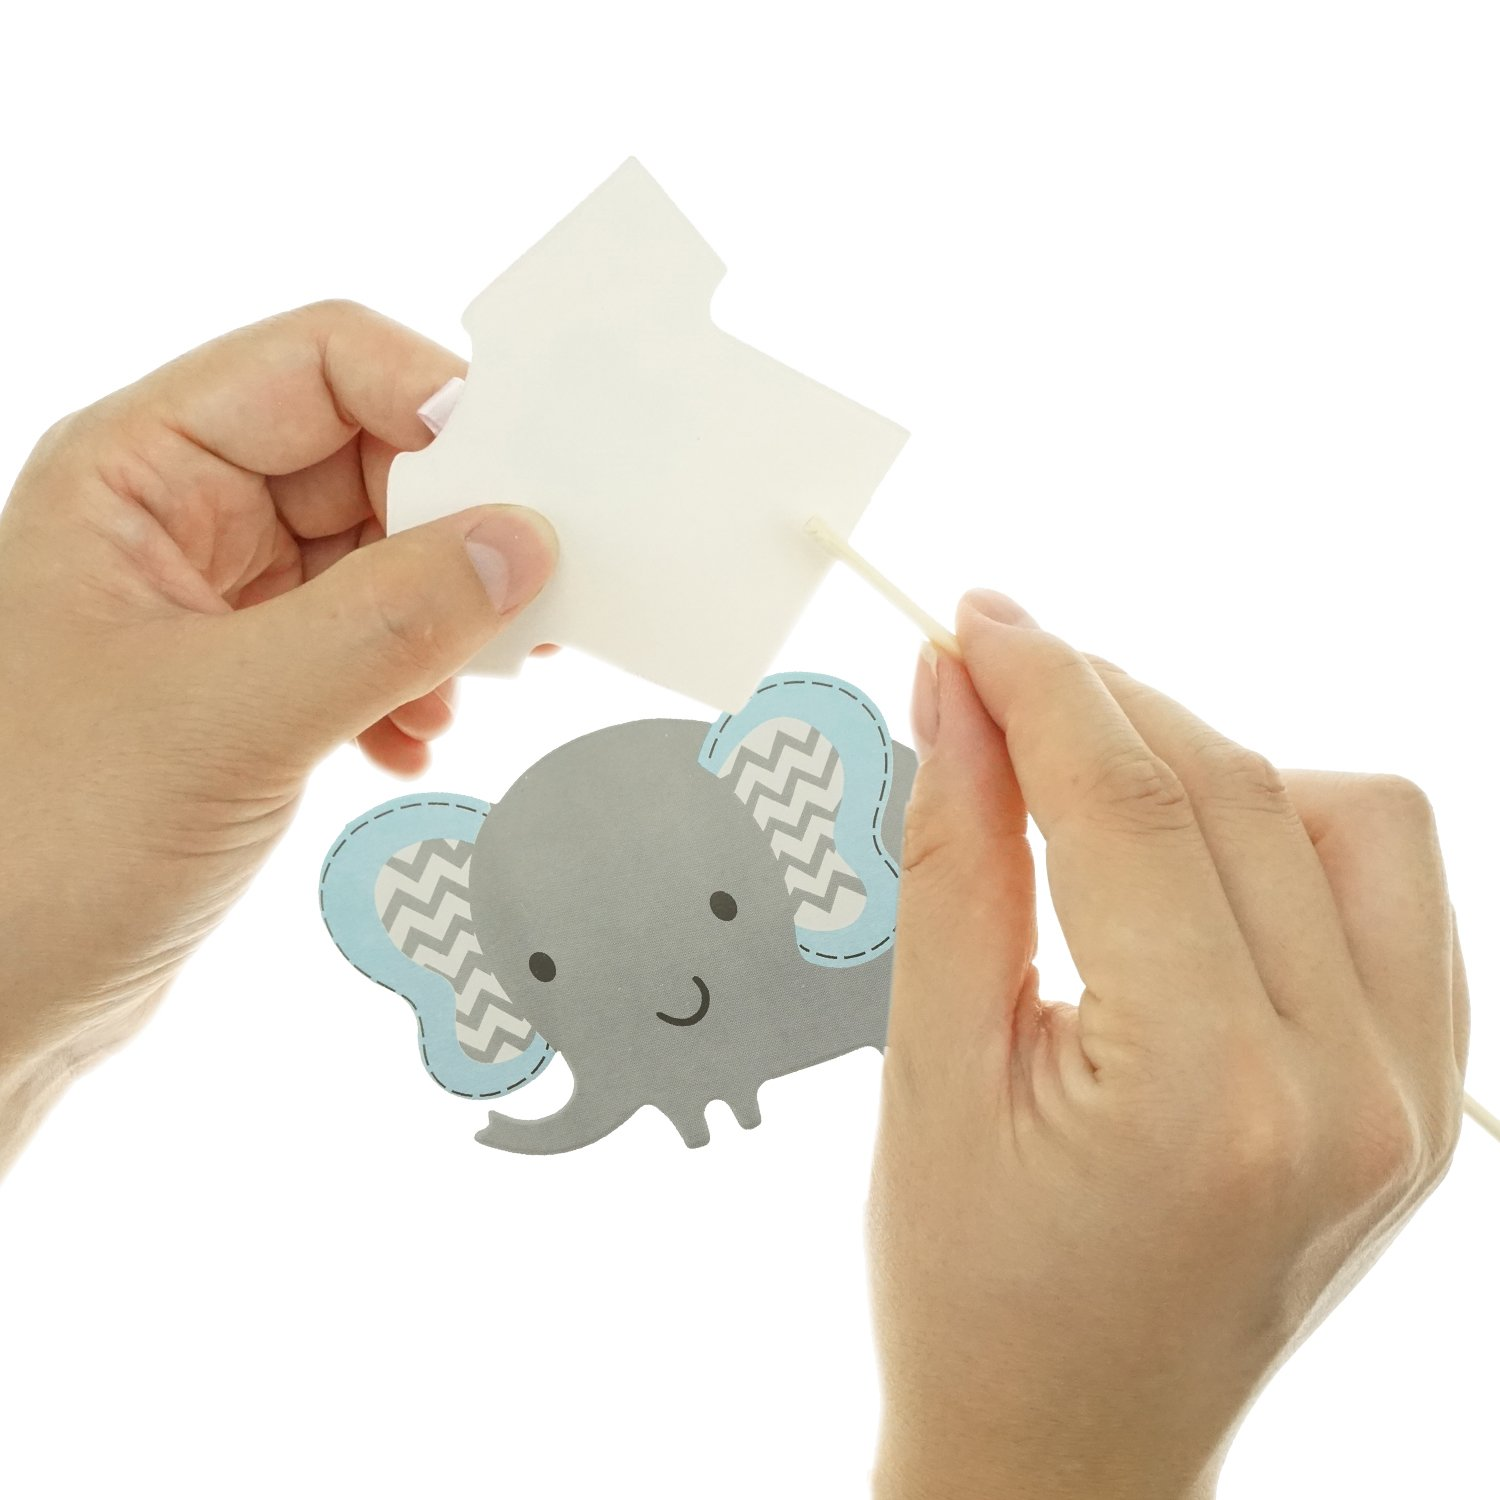 Shxstore Gray and Blue Elephant Cake Cupcake Topper Picks For Its A Boy Baby Shower Birthday Themed Party Decorations Supplies